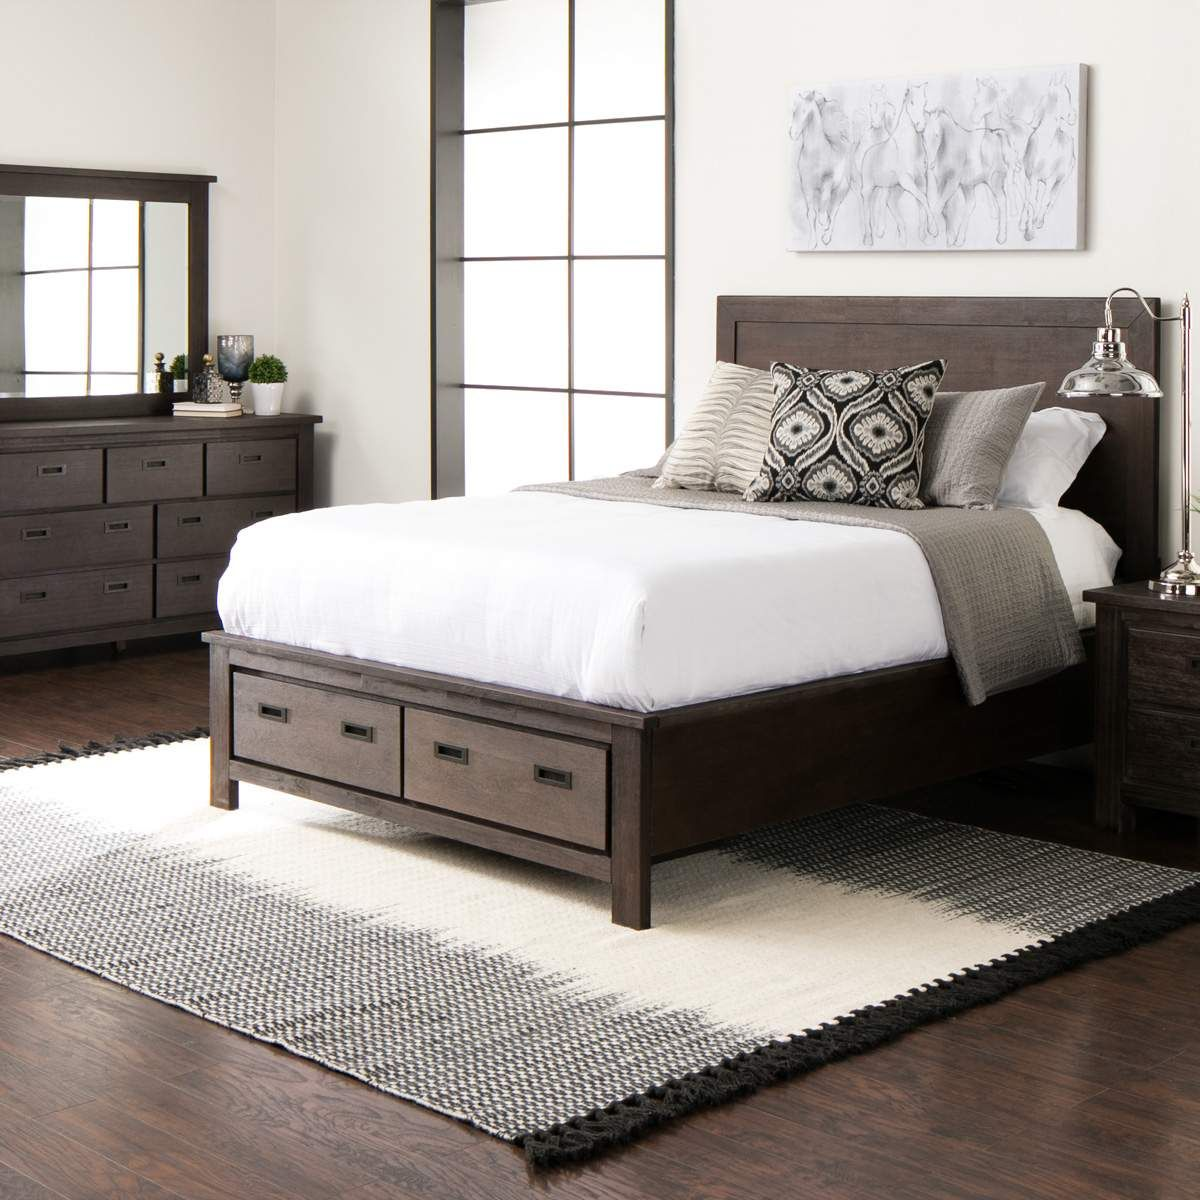 The Relaxed Style And Distressed Inset Metal Hardware Perfectly Complement The Parlee Panel Storage Bedroom Coll Bedroom Furniture Sets Furniture Bedroom Sets